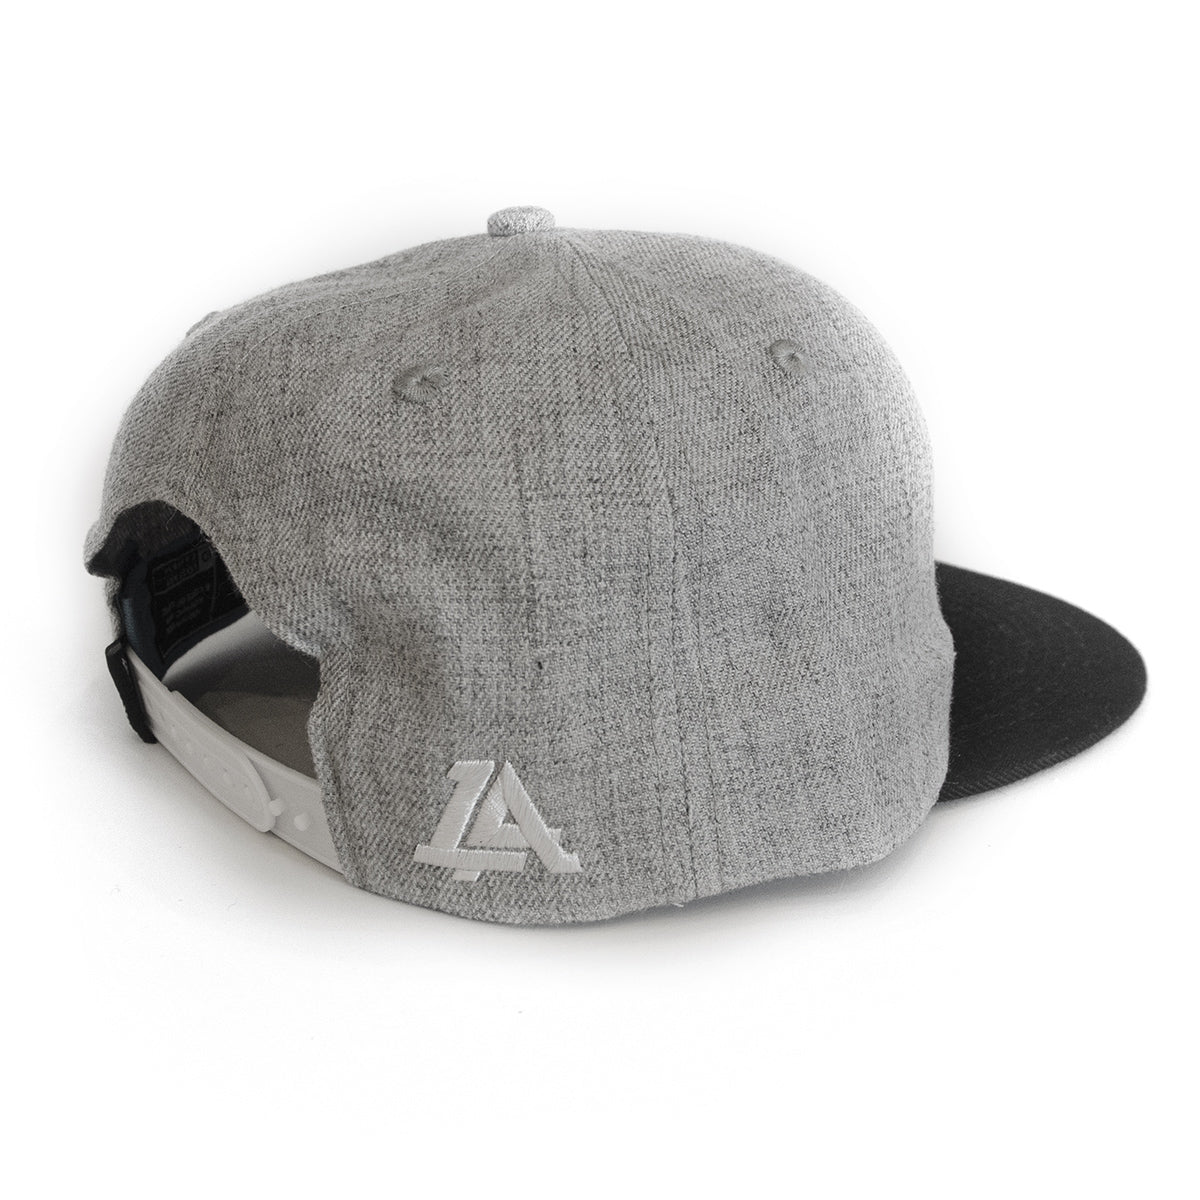 Lost Art Canada - white 807 grey wool mix snapback hat back view